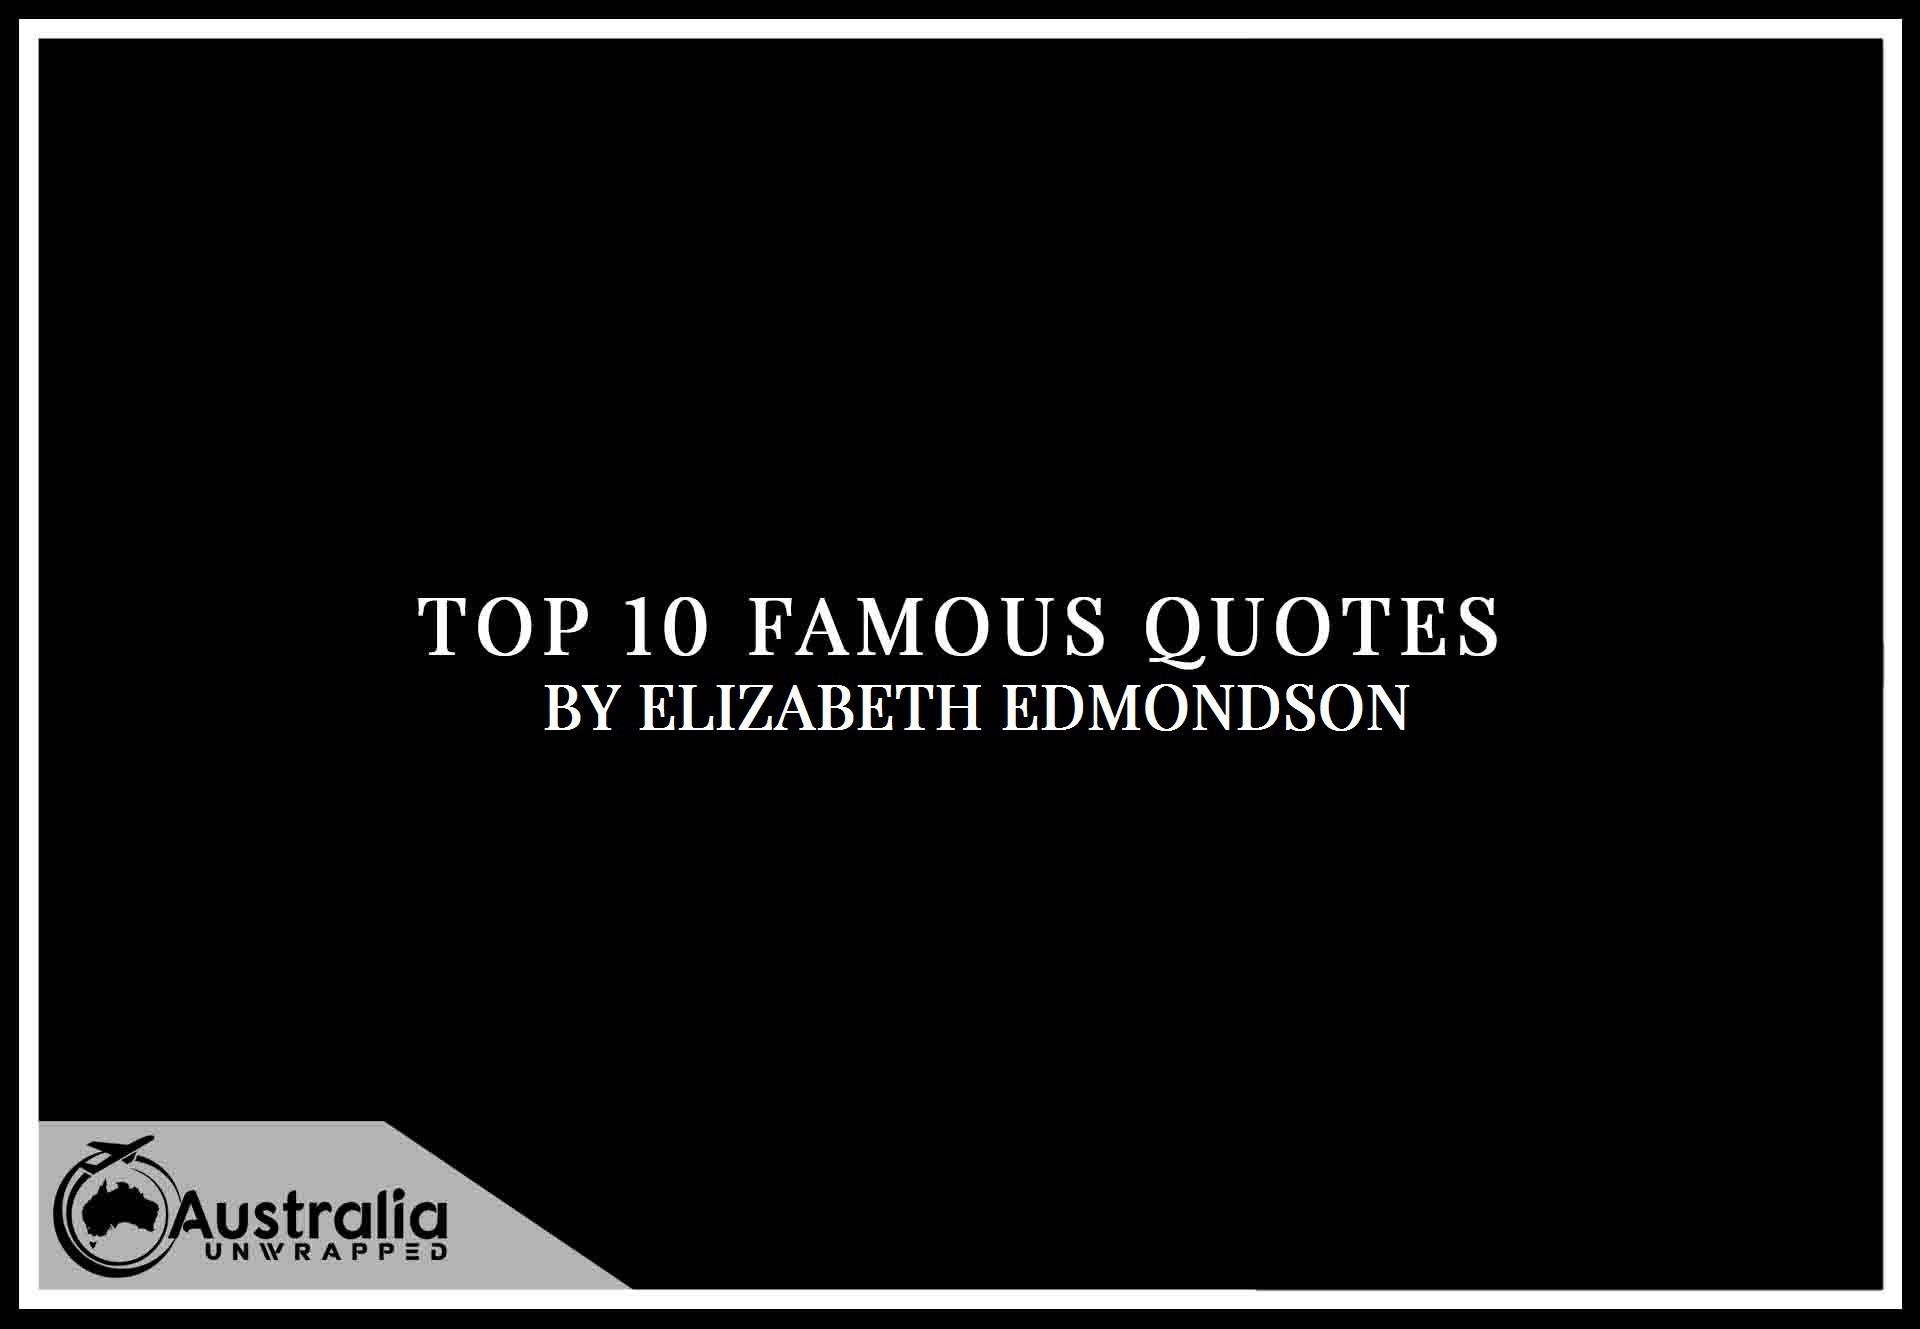 Elizabeth Edmondson's Top 10 Popular and Famous Quotes